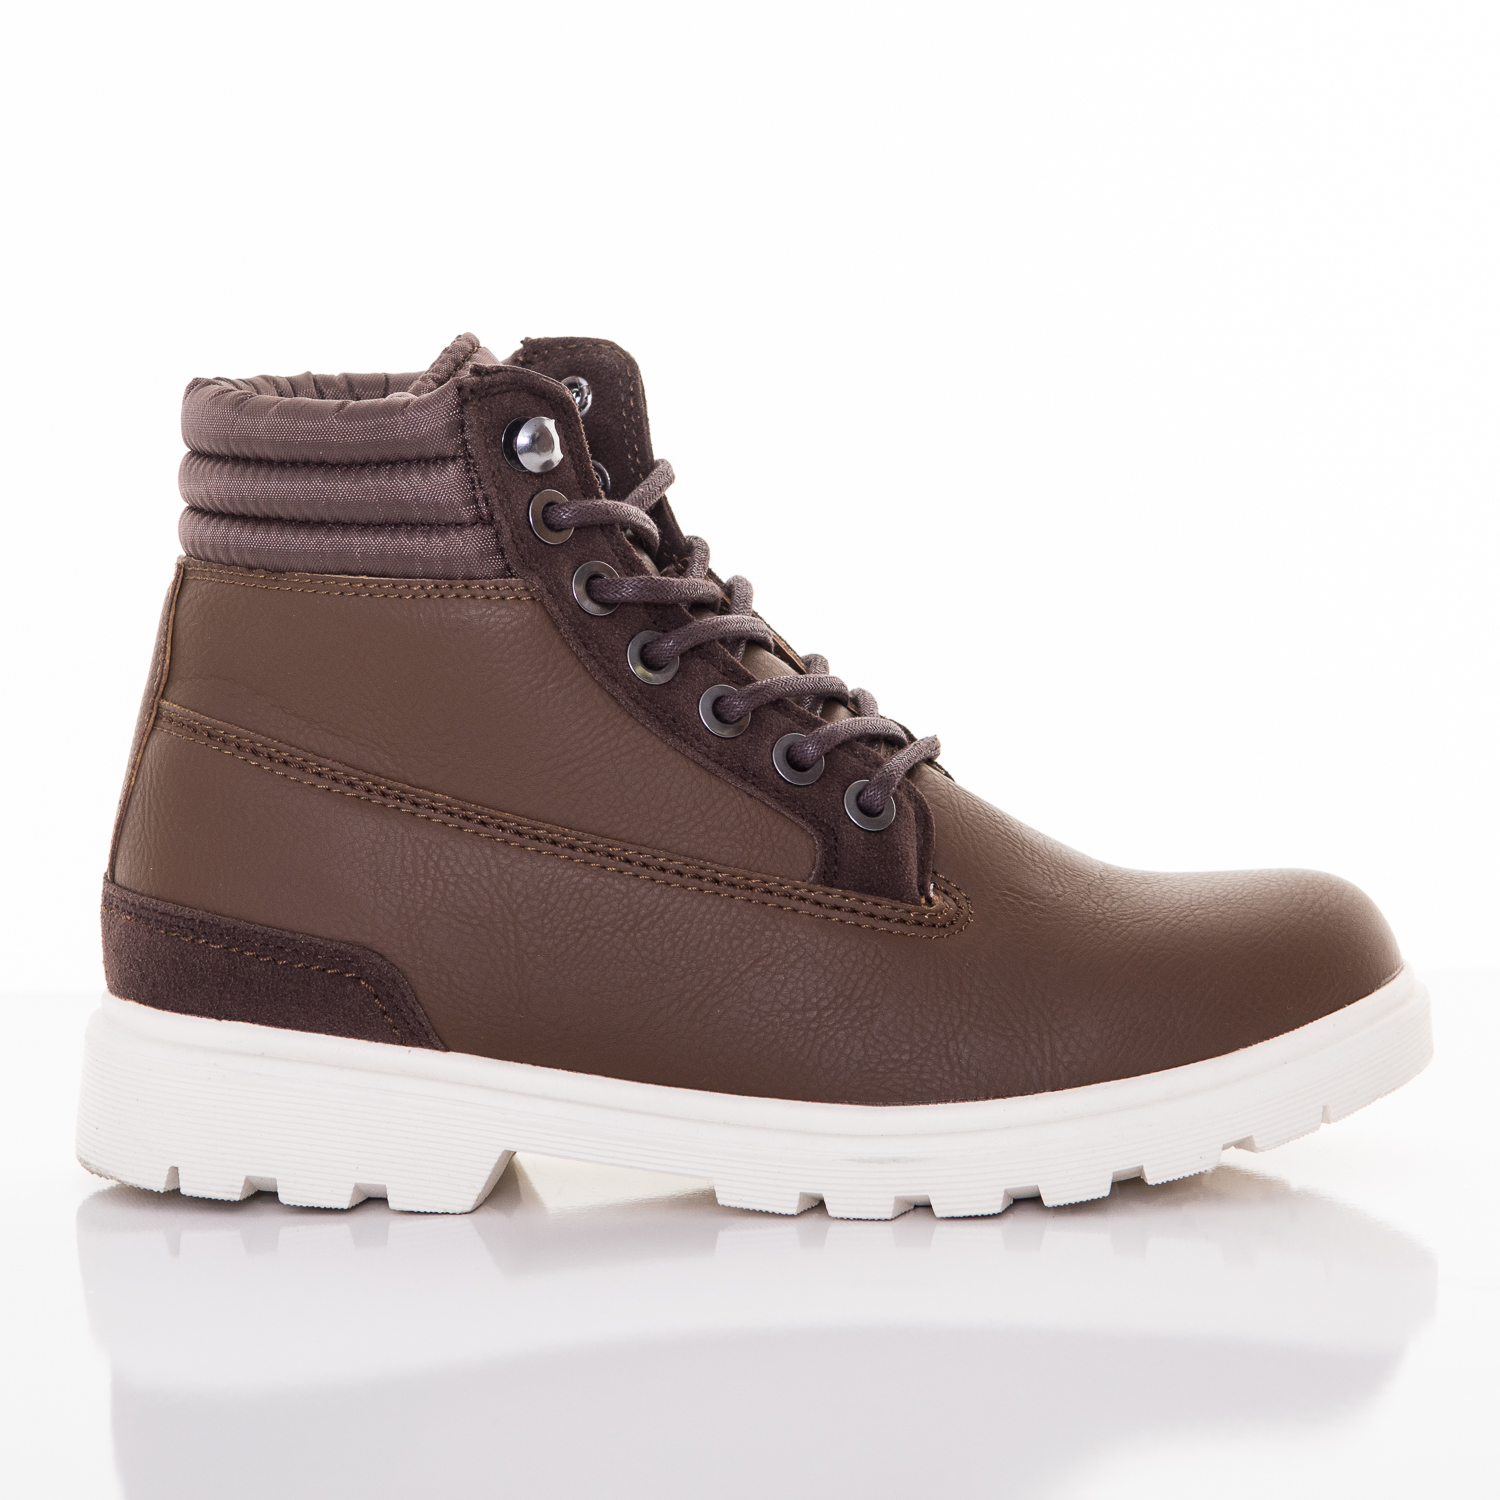 Zimná obuv Urban Classics Winter Boots Brown Darkbrown 38